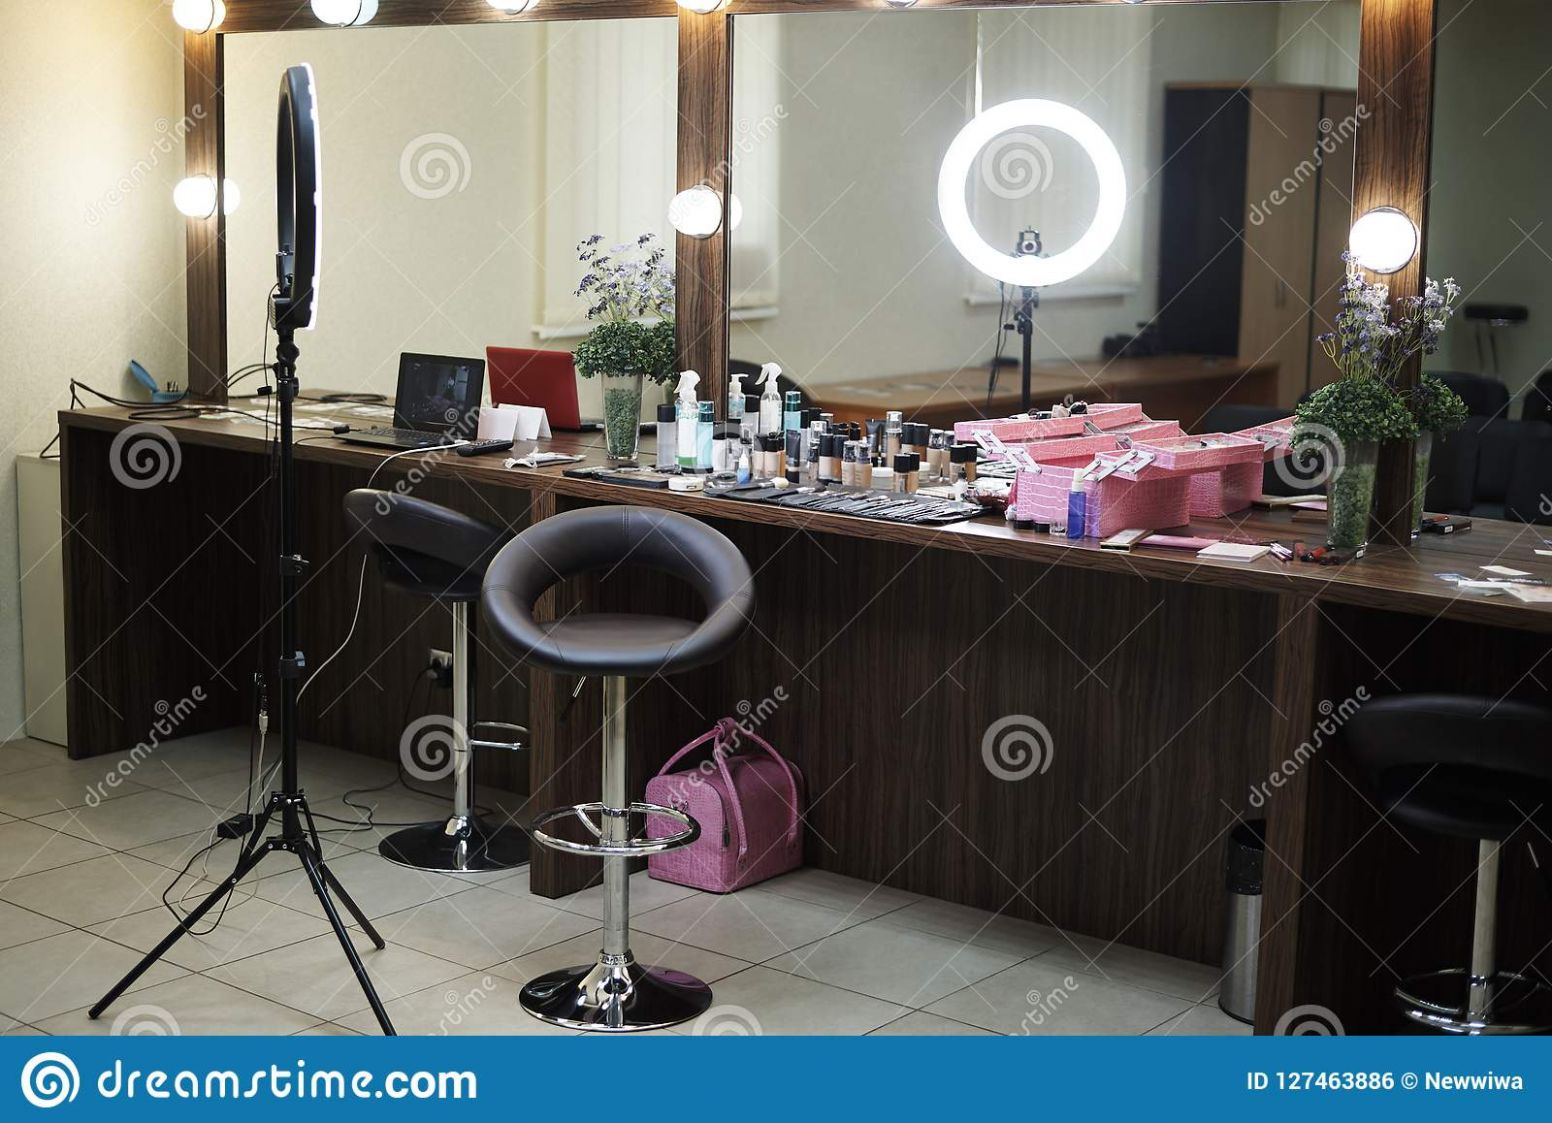 Beauty Office With A Make-up Room Stock Photo - Image of applying ...